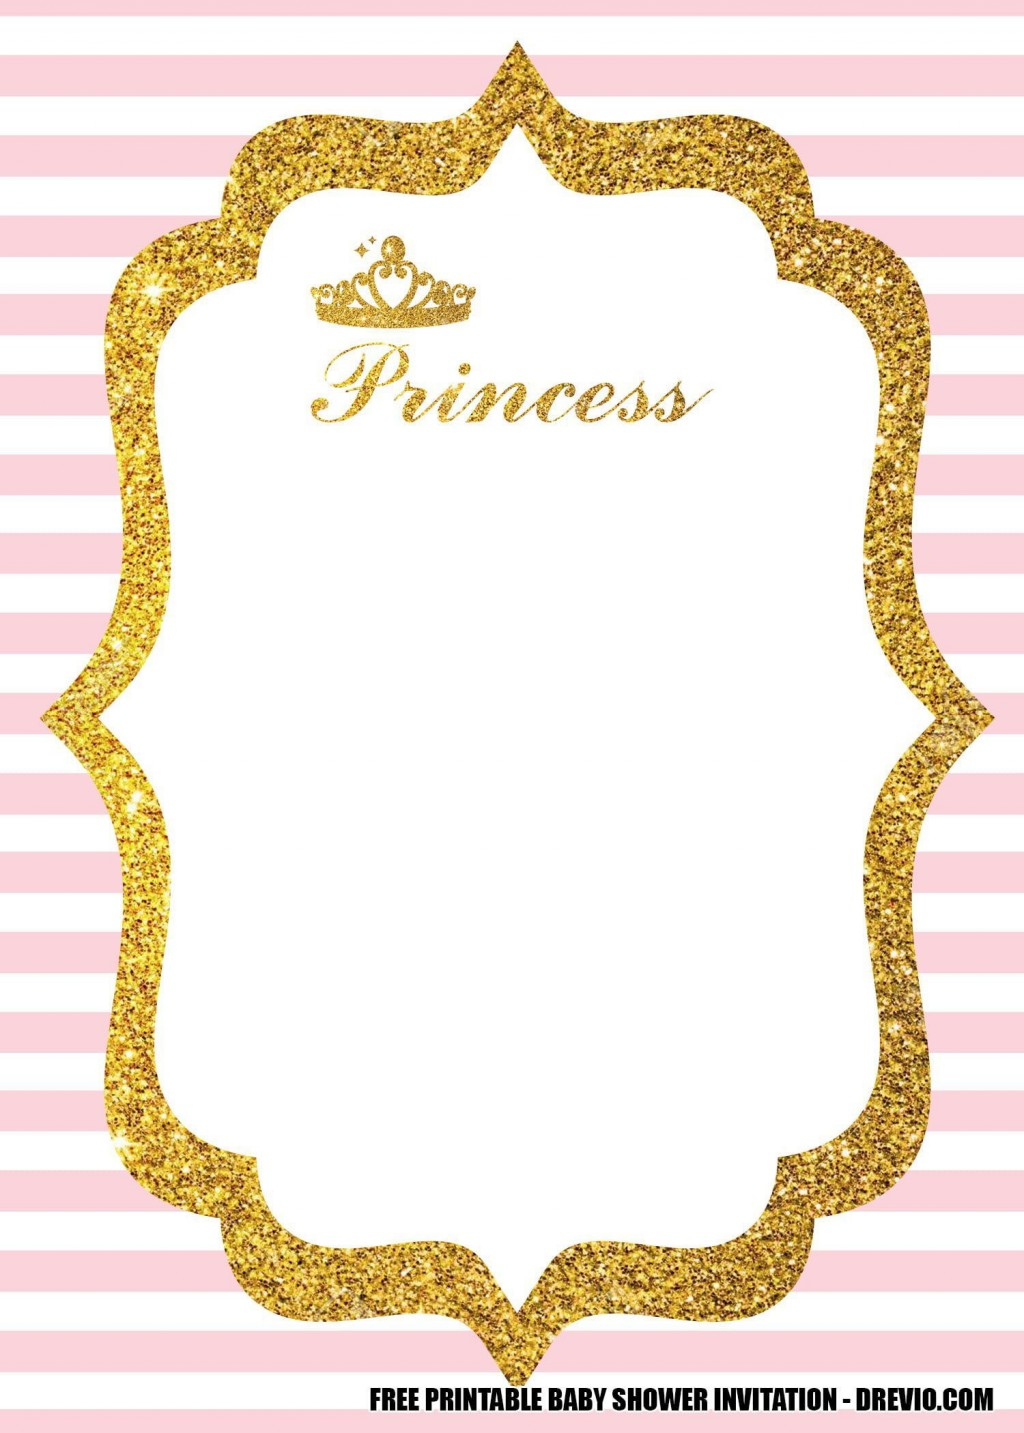 008 Stunning Free Princes Baby Shower Invitation Template For Word Image Large